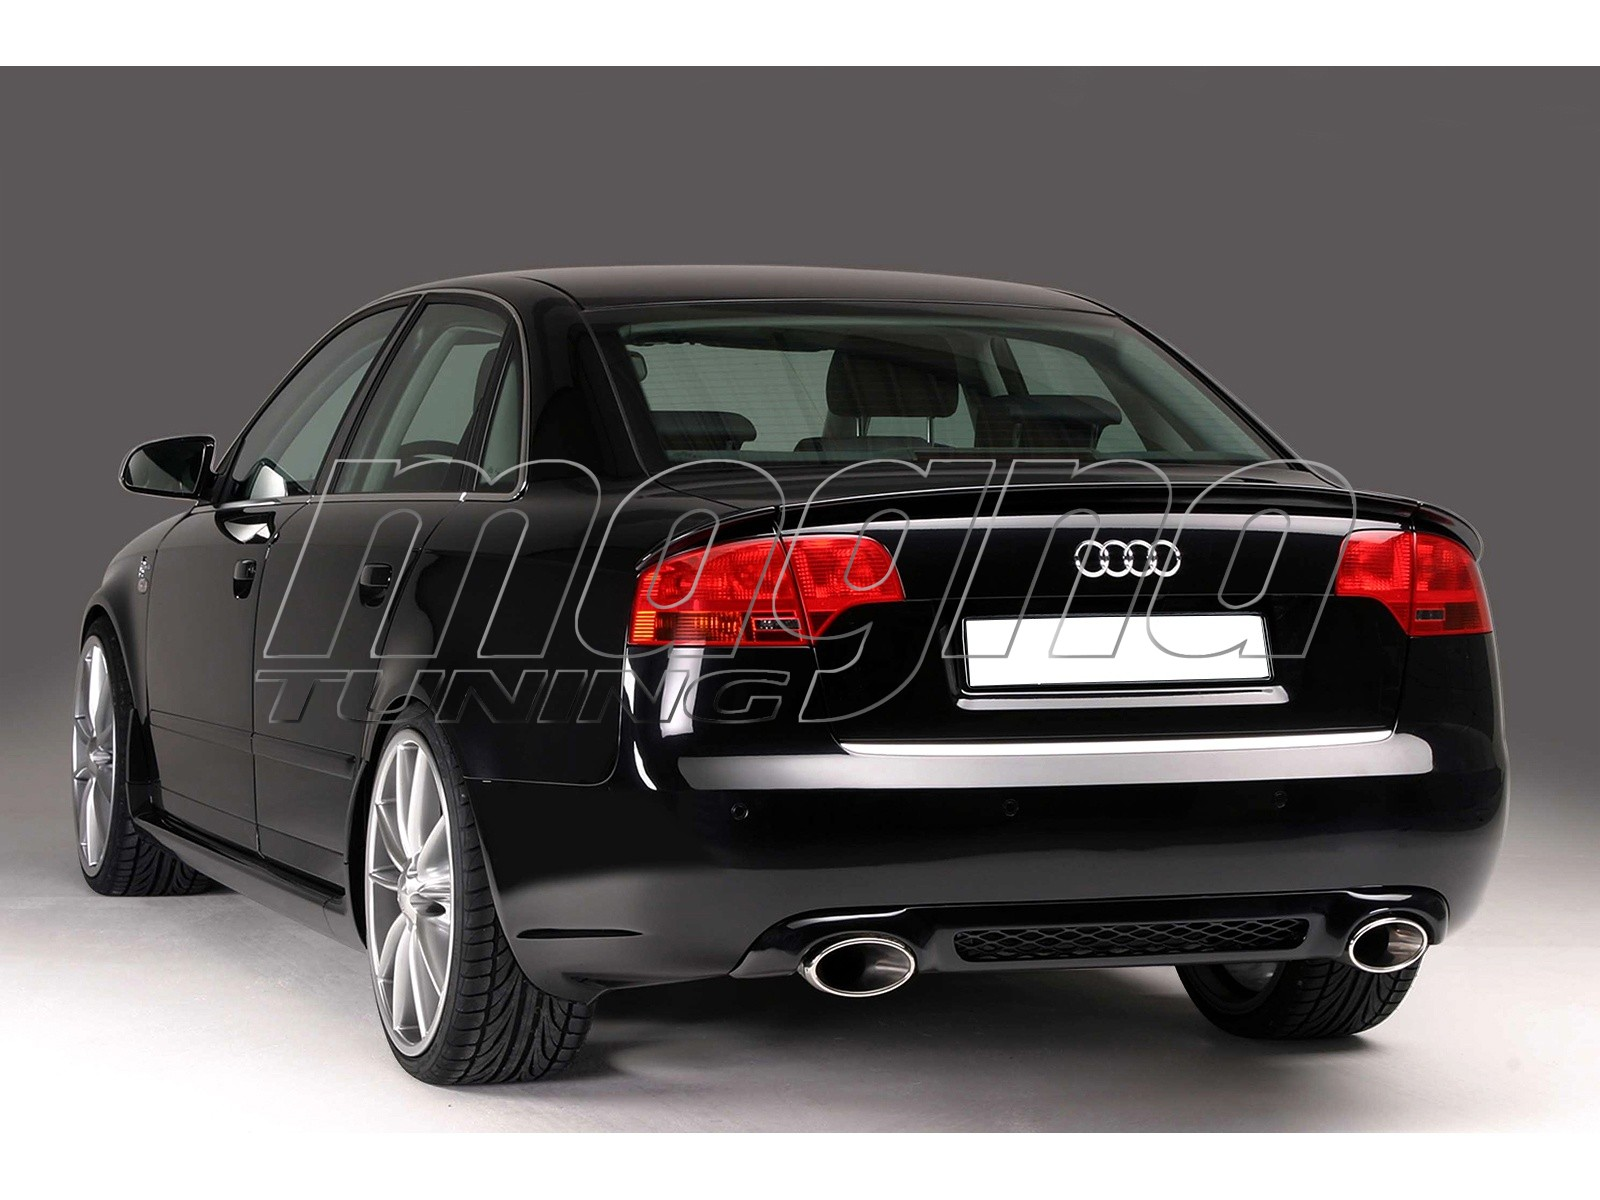 audi a4 b7 8e s4 b8 look body kit. Black Bedroom Furniture Sets. Home Design Ideas